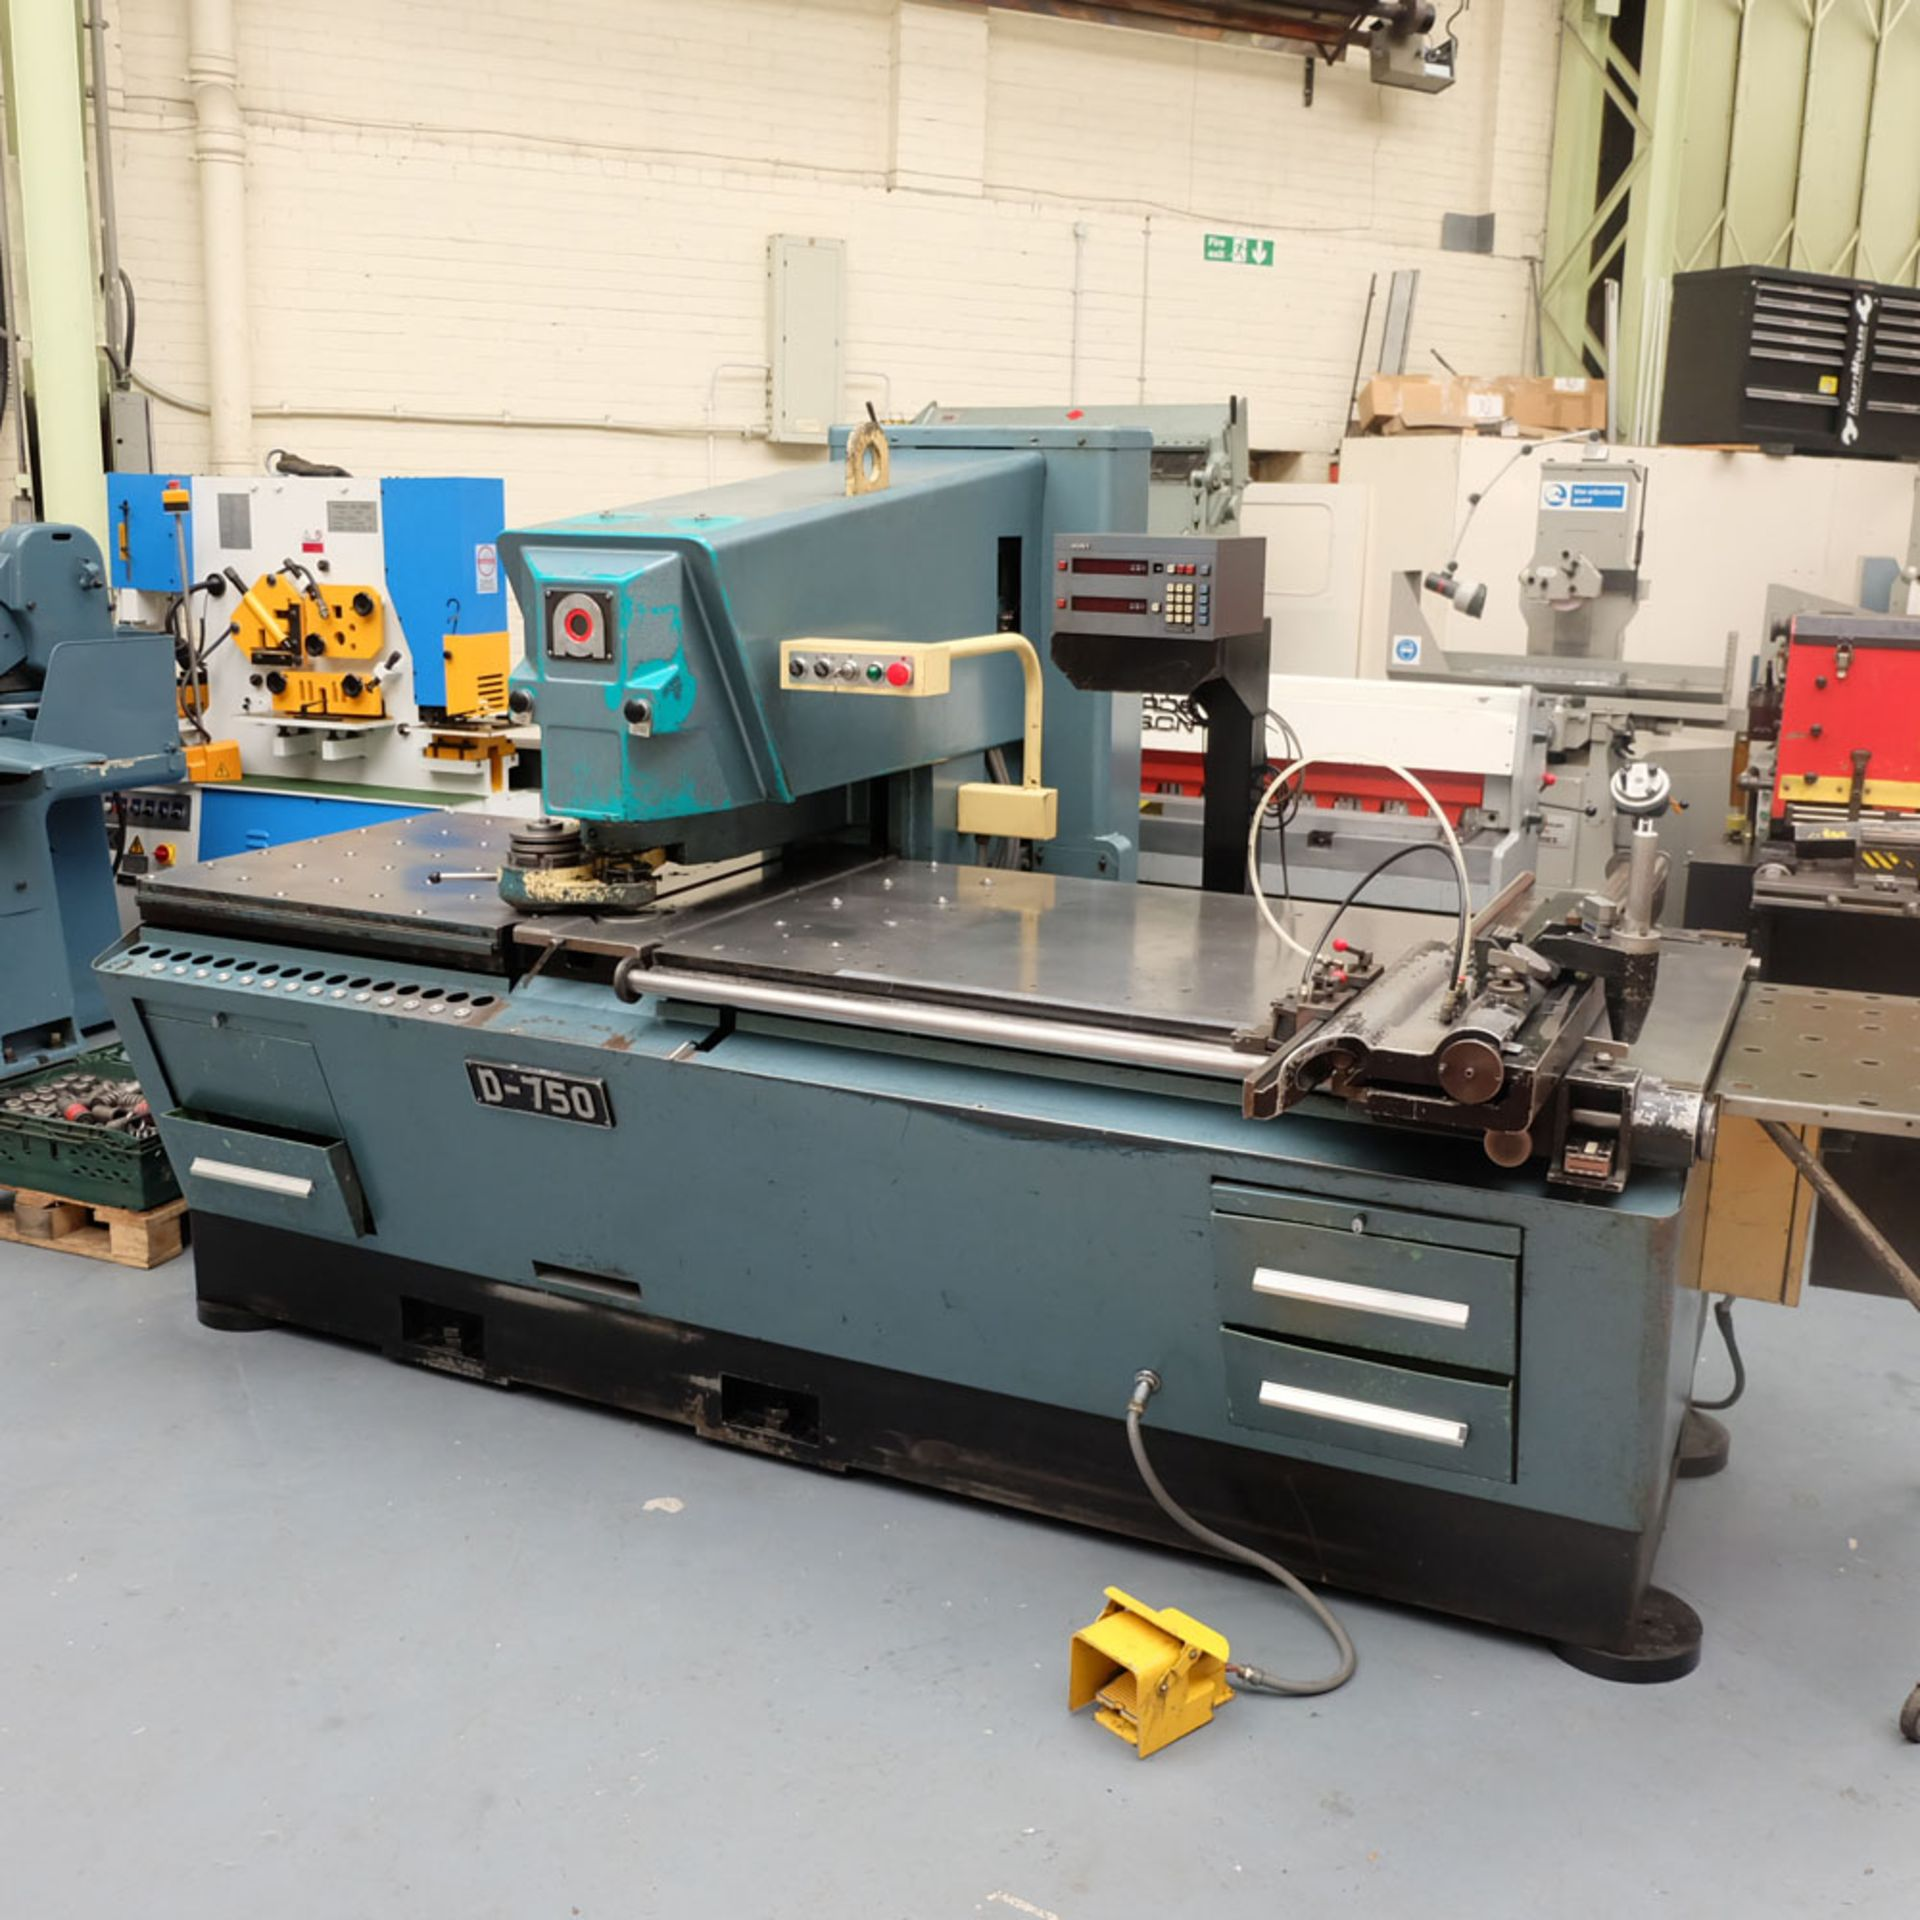 Amada D-750 Duplicator Punching Machine with Tooling and Digital Readout.